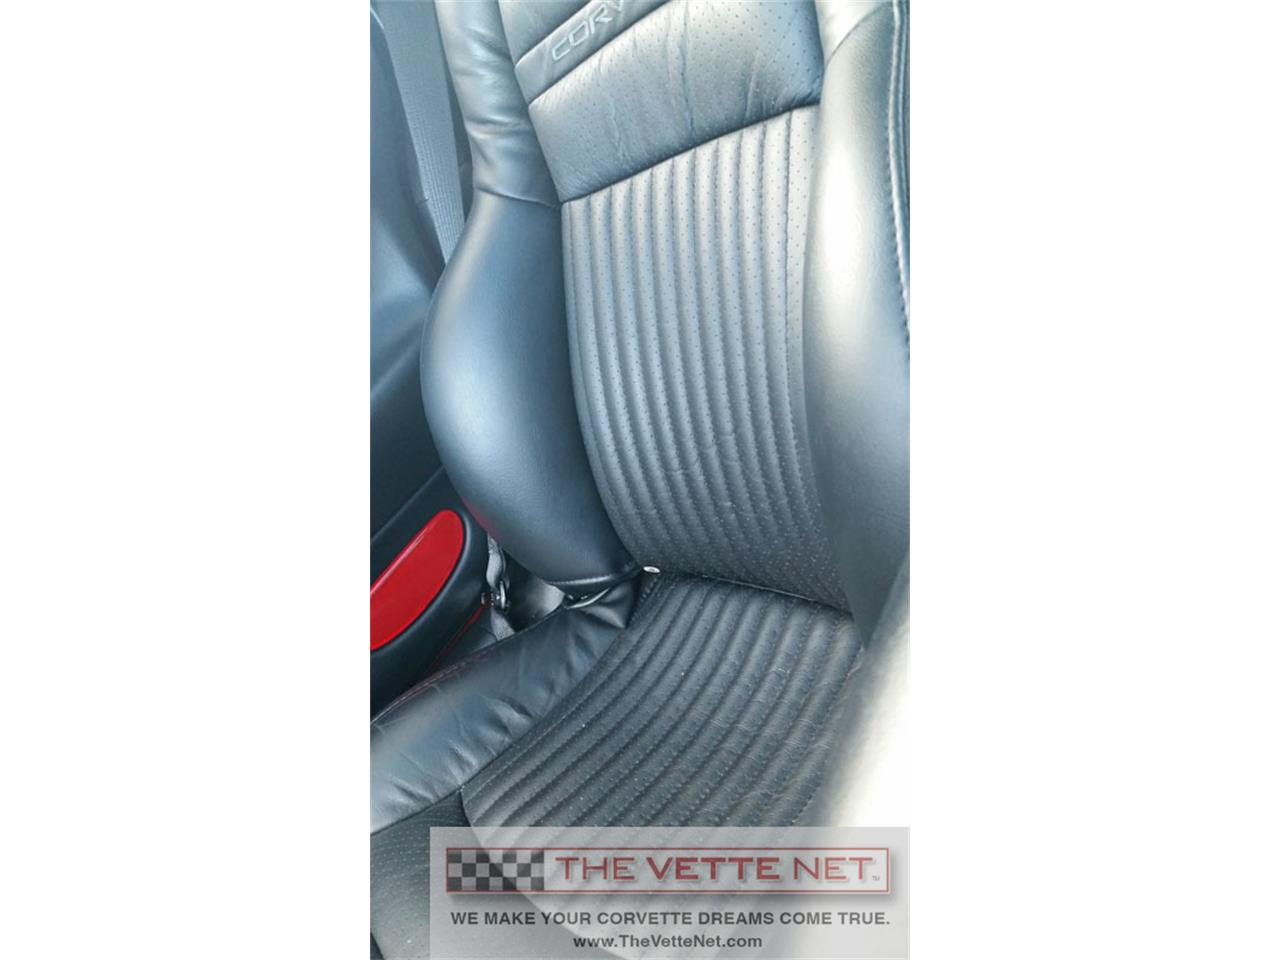 Large Picture of '03 Chevrolet Corvette located in Florida - $24,990.00 Offered by The Vette Net - ISTP